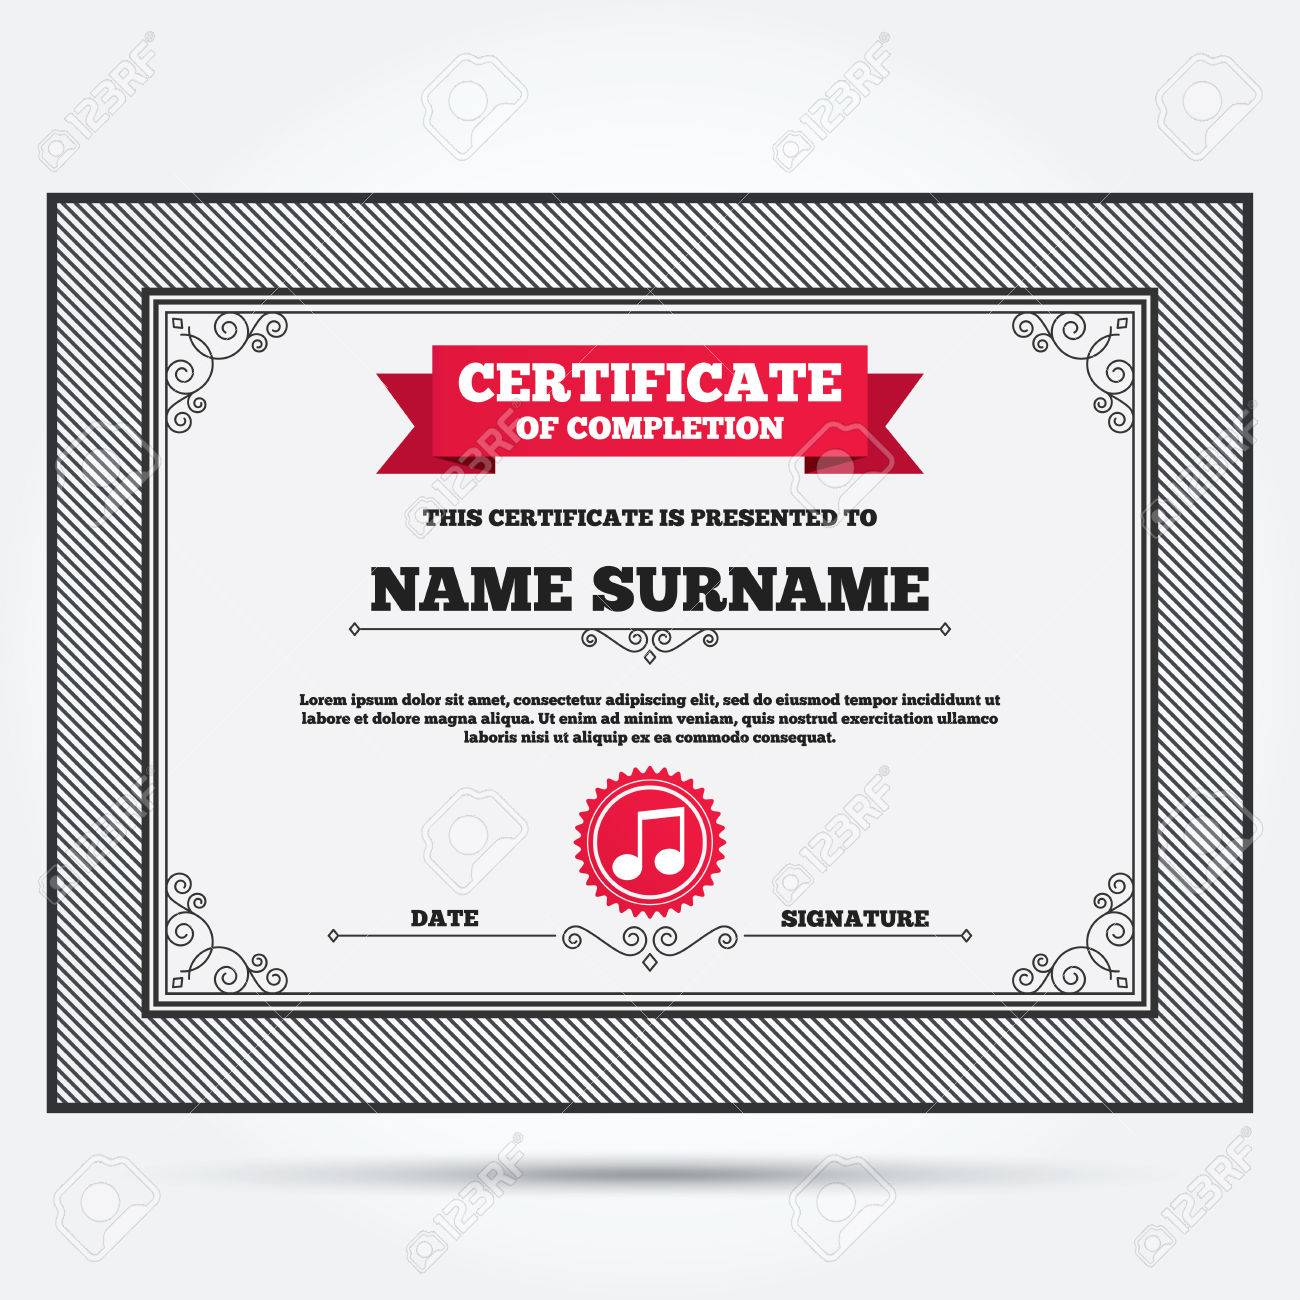 Certificate Of Completion Music Note Sign Icon Musical Symbol